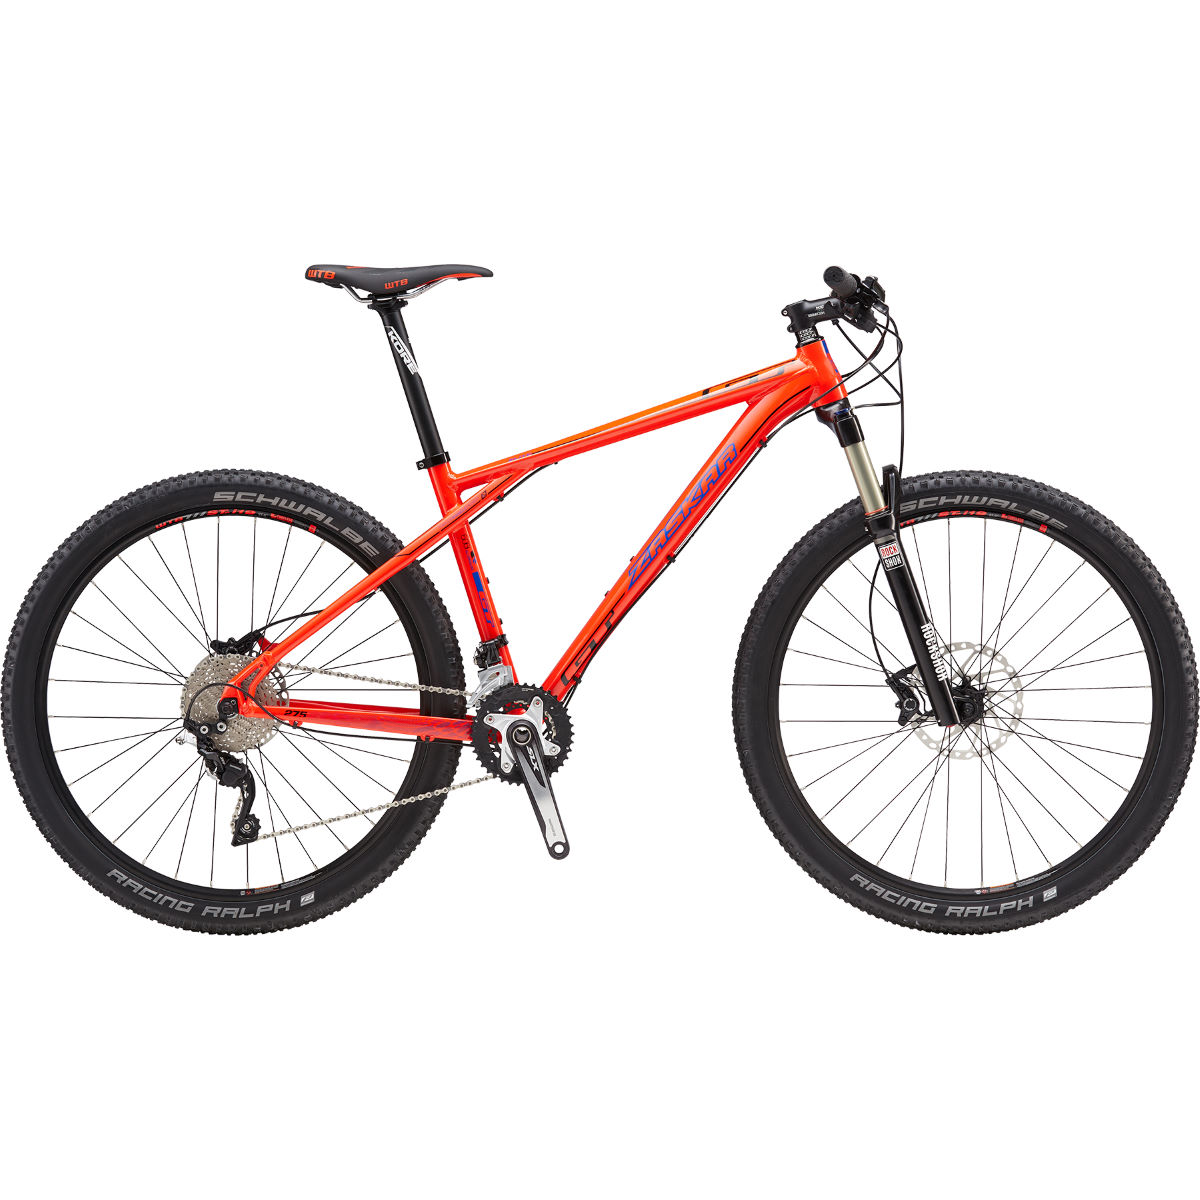 VTT GT Zaskar Elite (2016) - M Stock Bike Orange VTT semi-rigides